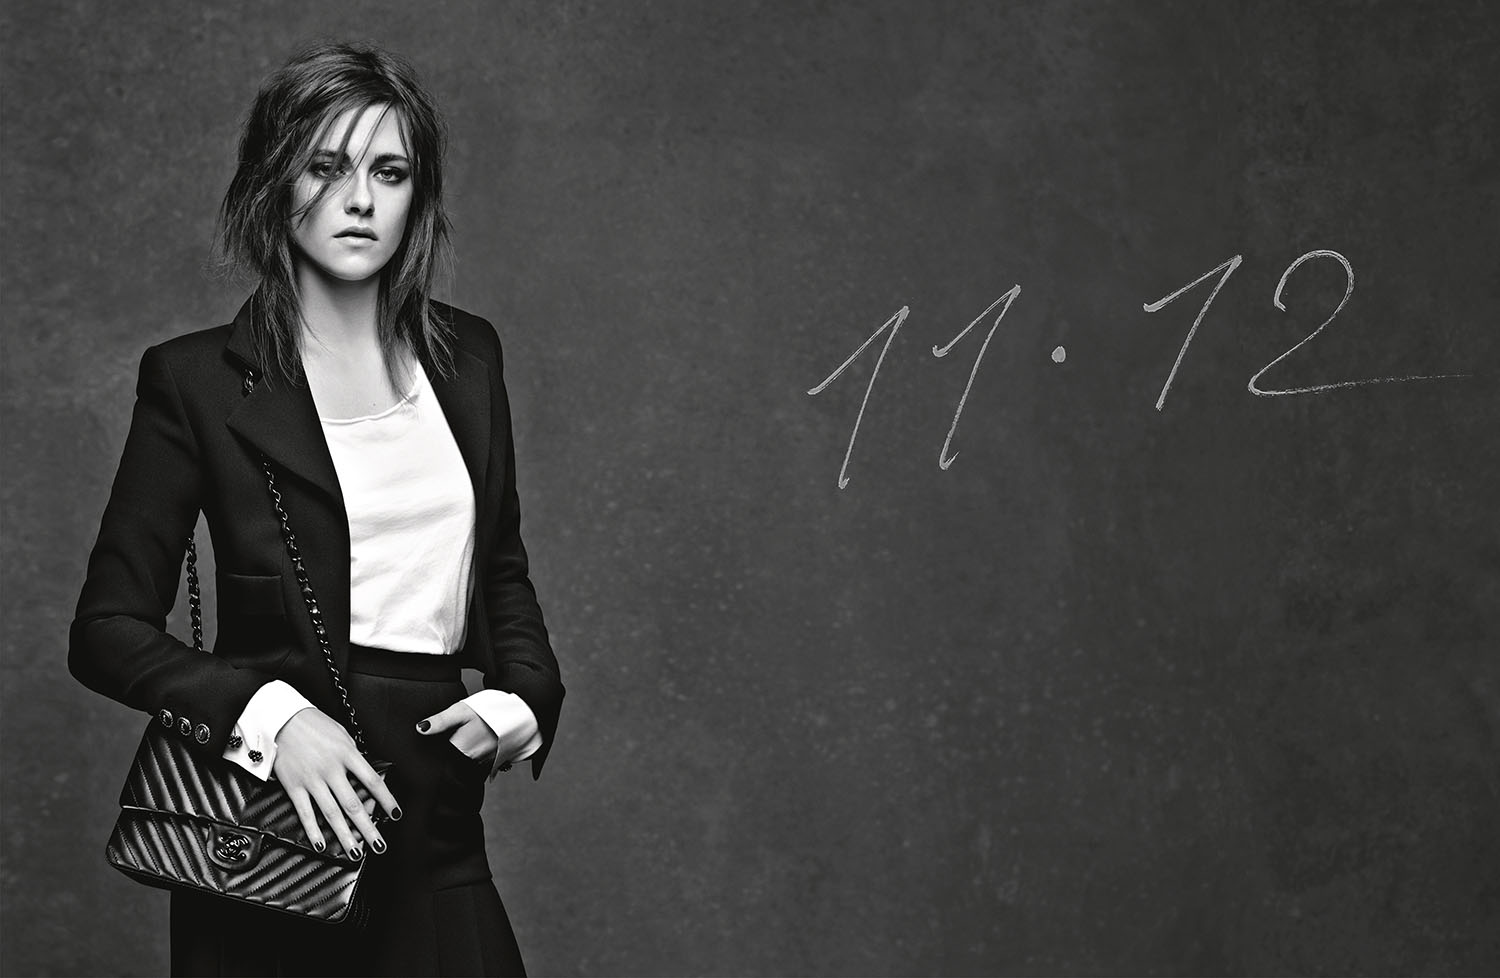 Kristen Stewart ad campaign for chanel 11.12 handbag by karl lagerfeld